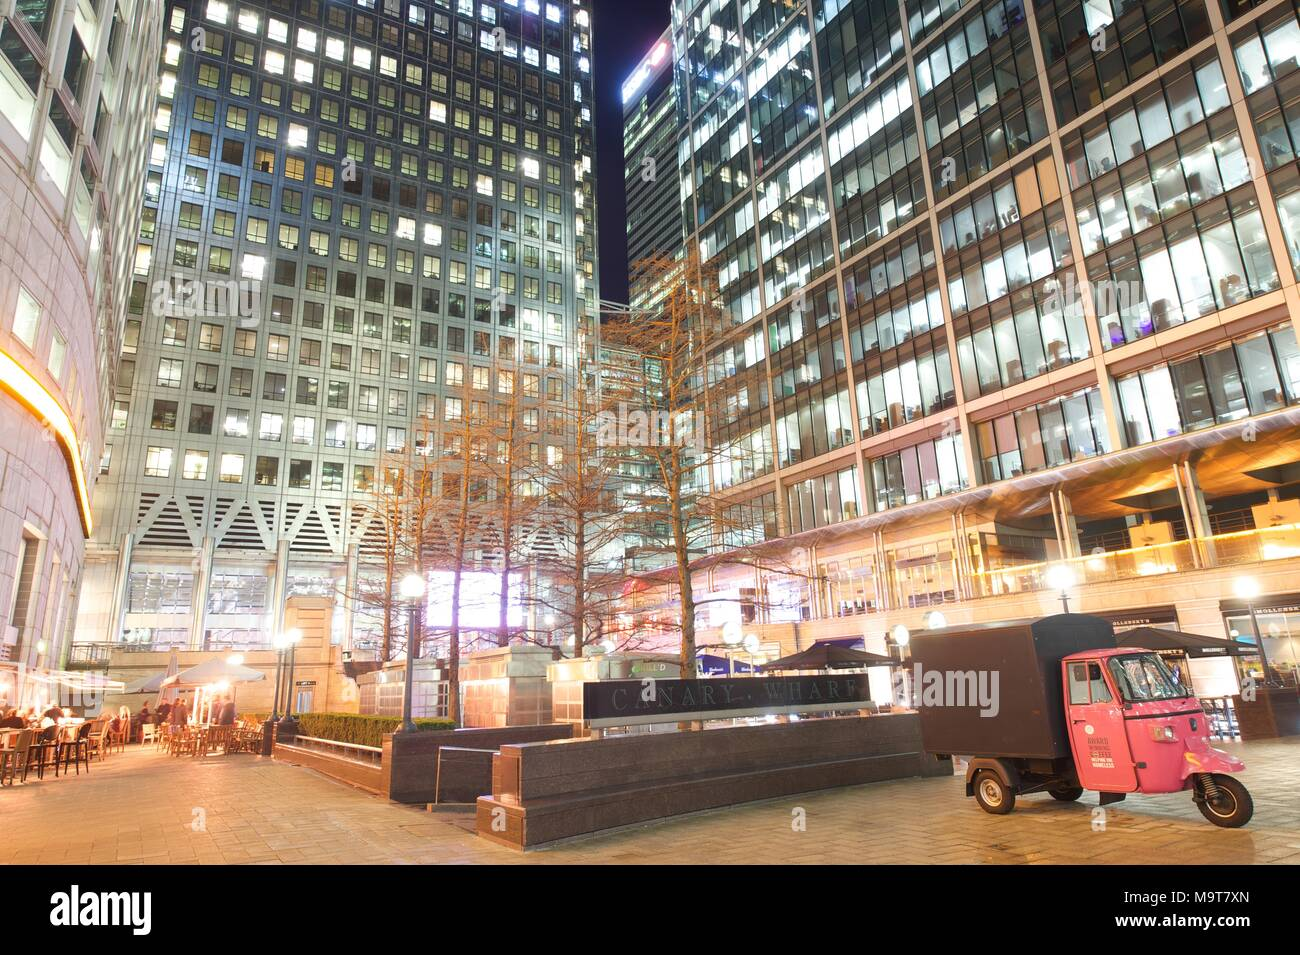 Canary Wharf at night - Stock Image